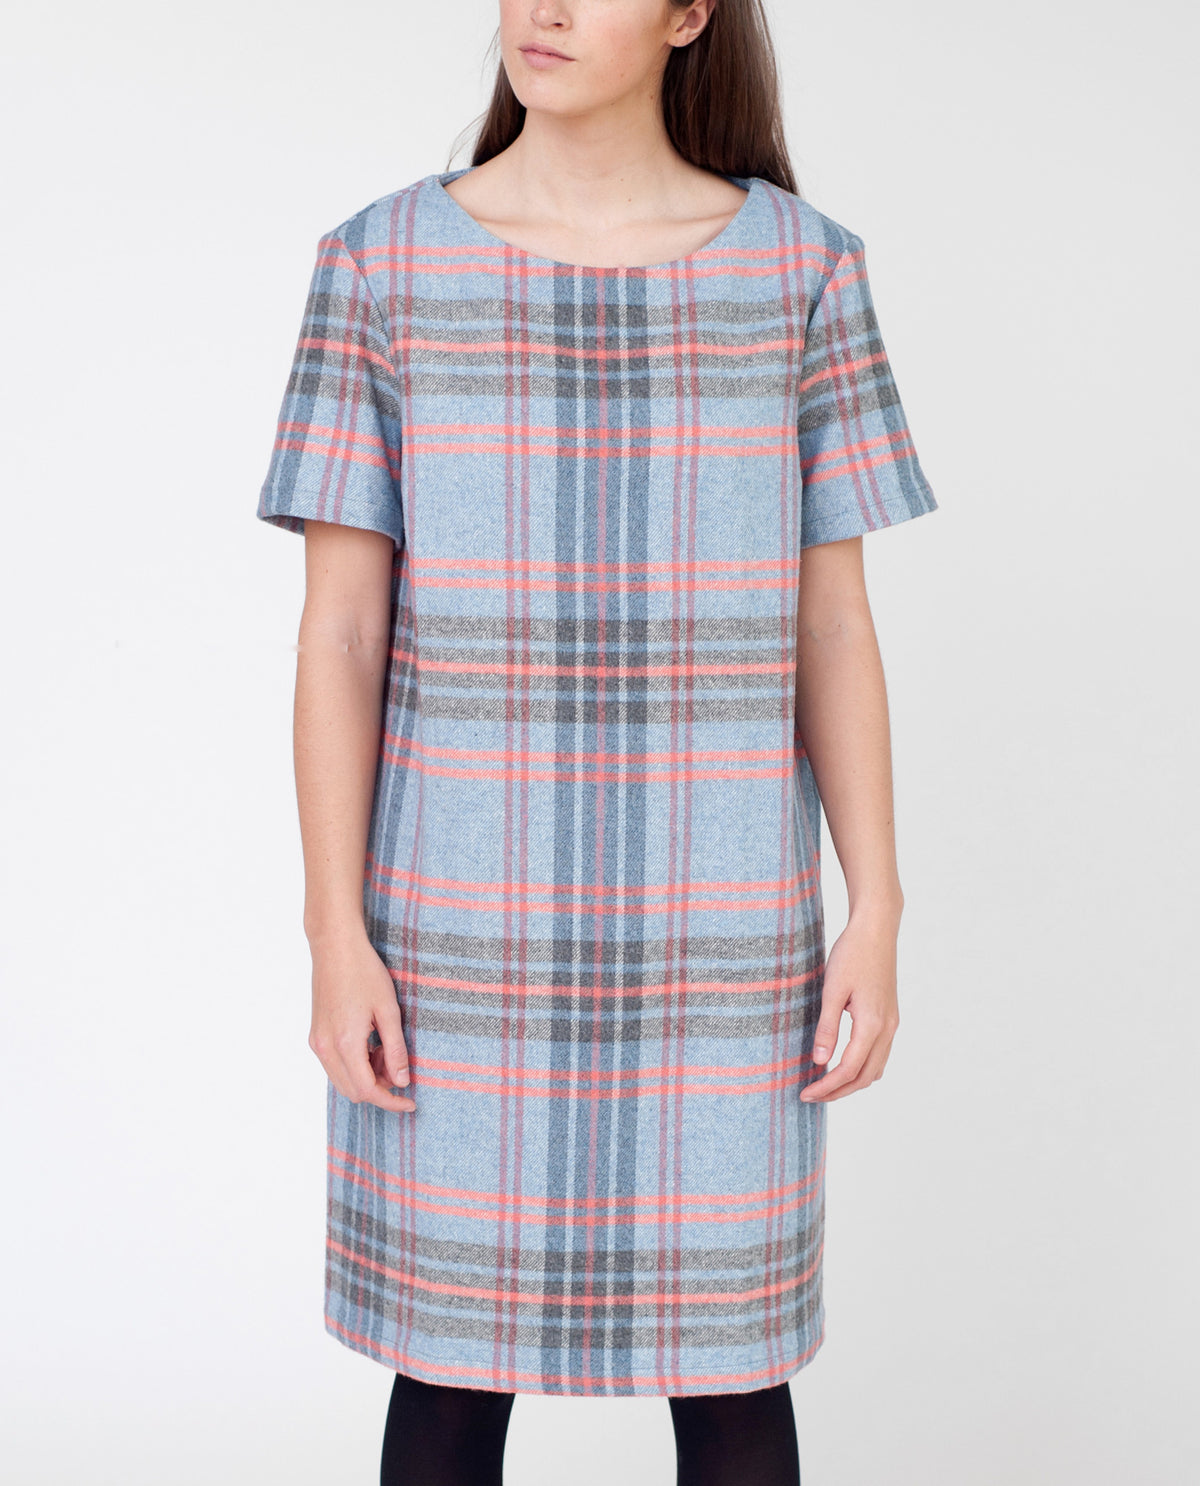 HALLIE Checked Shift Dress